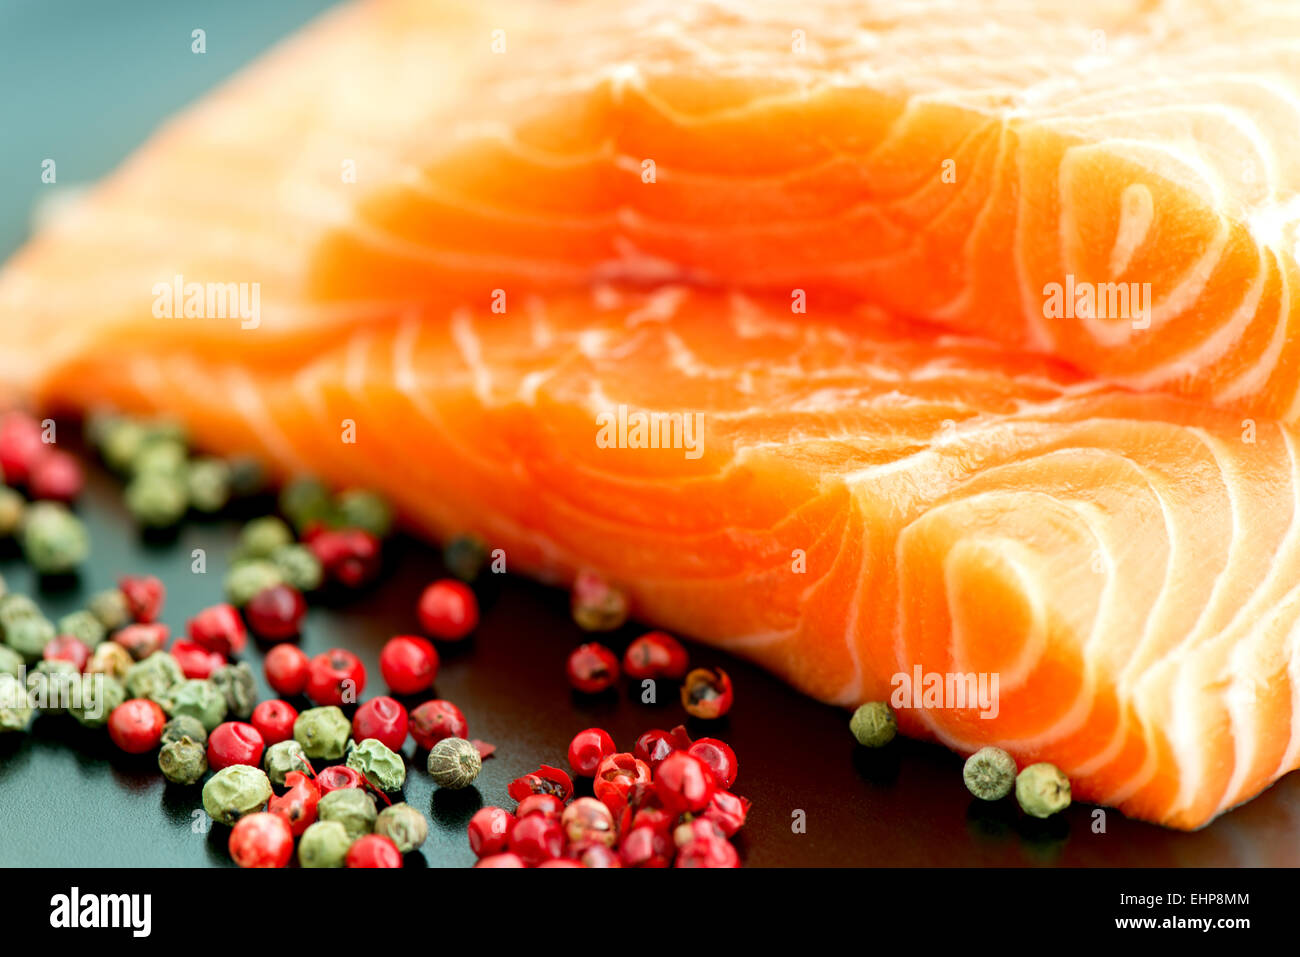 Raw Salmon Ready To Cook Close Up On Black Surface